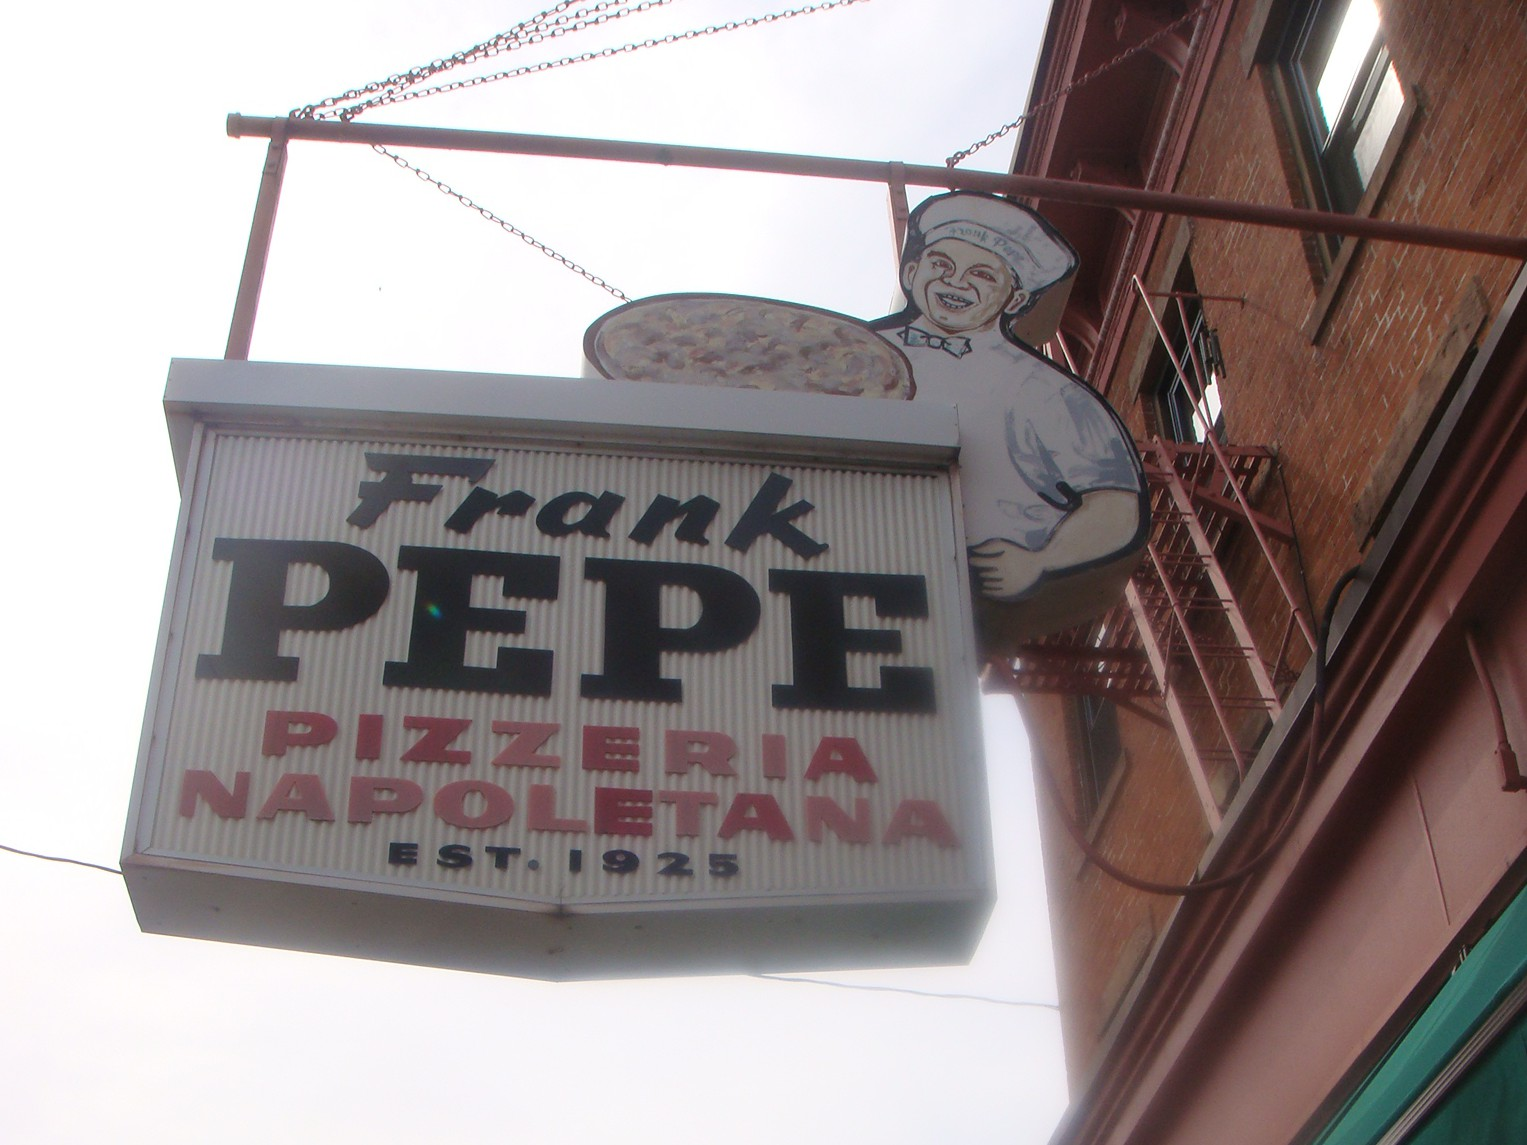 LocalEats Frank Pepe Pizzeria Napoletana in New Haven restaurant pic